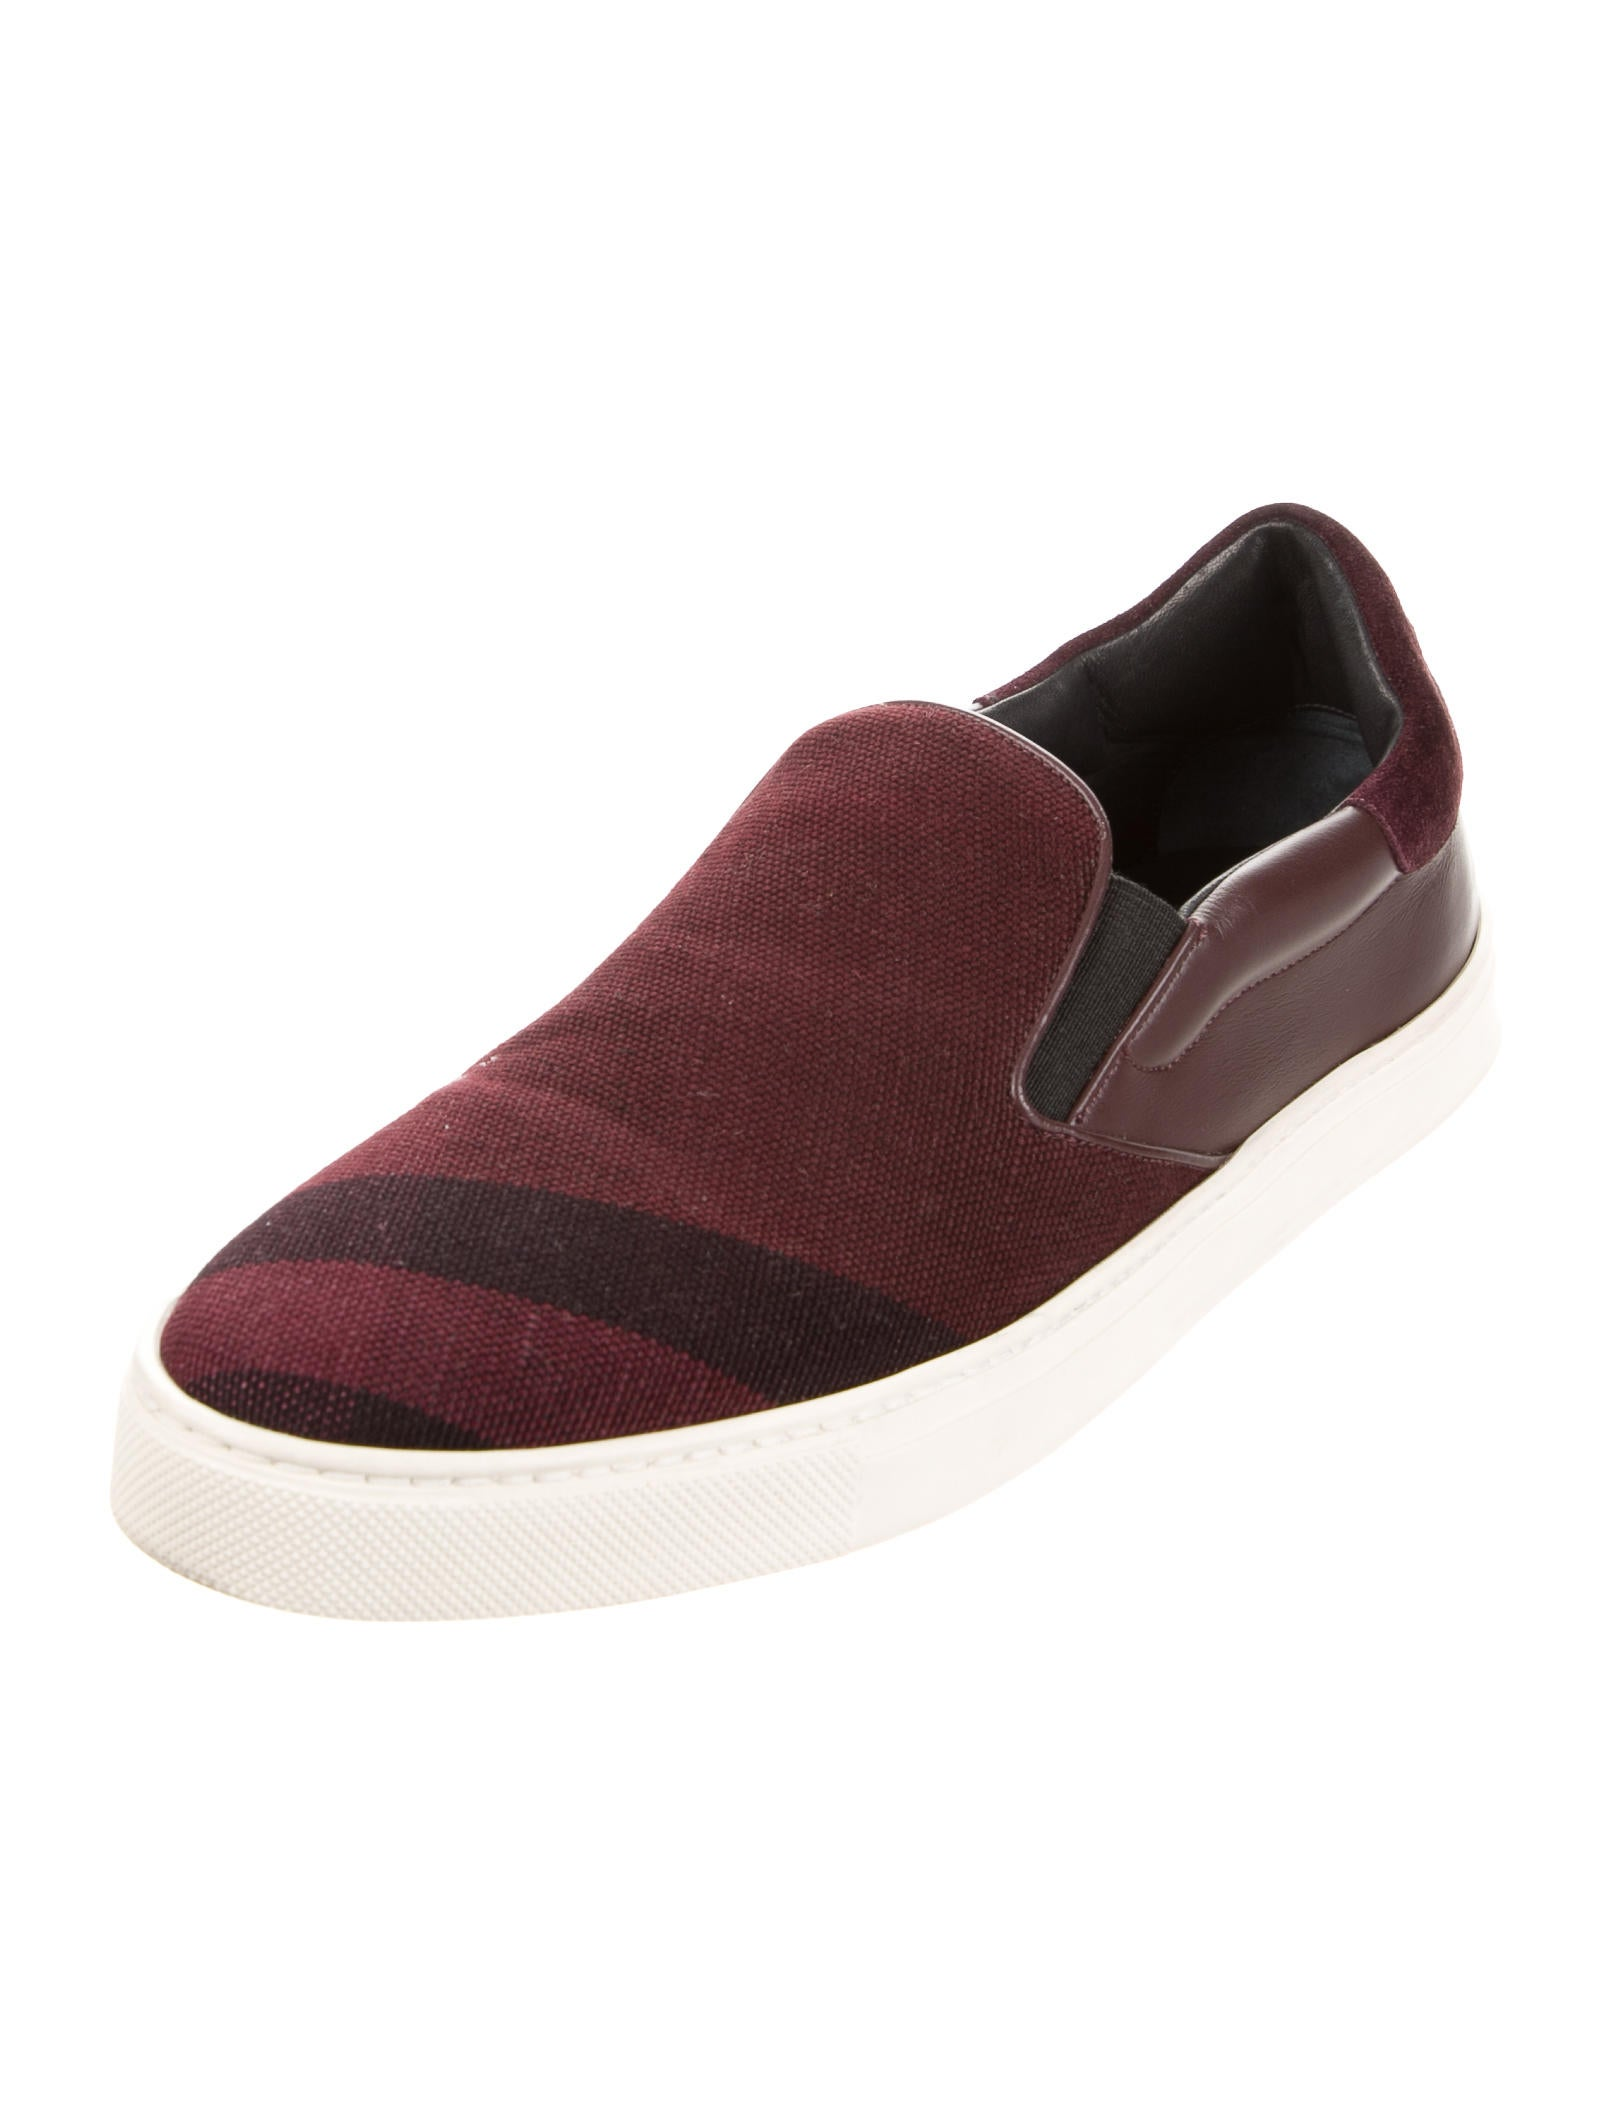 burberry check slip on sneakers shoes bur68304